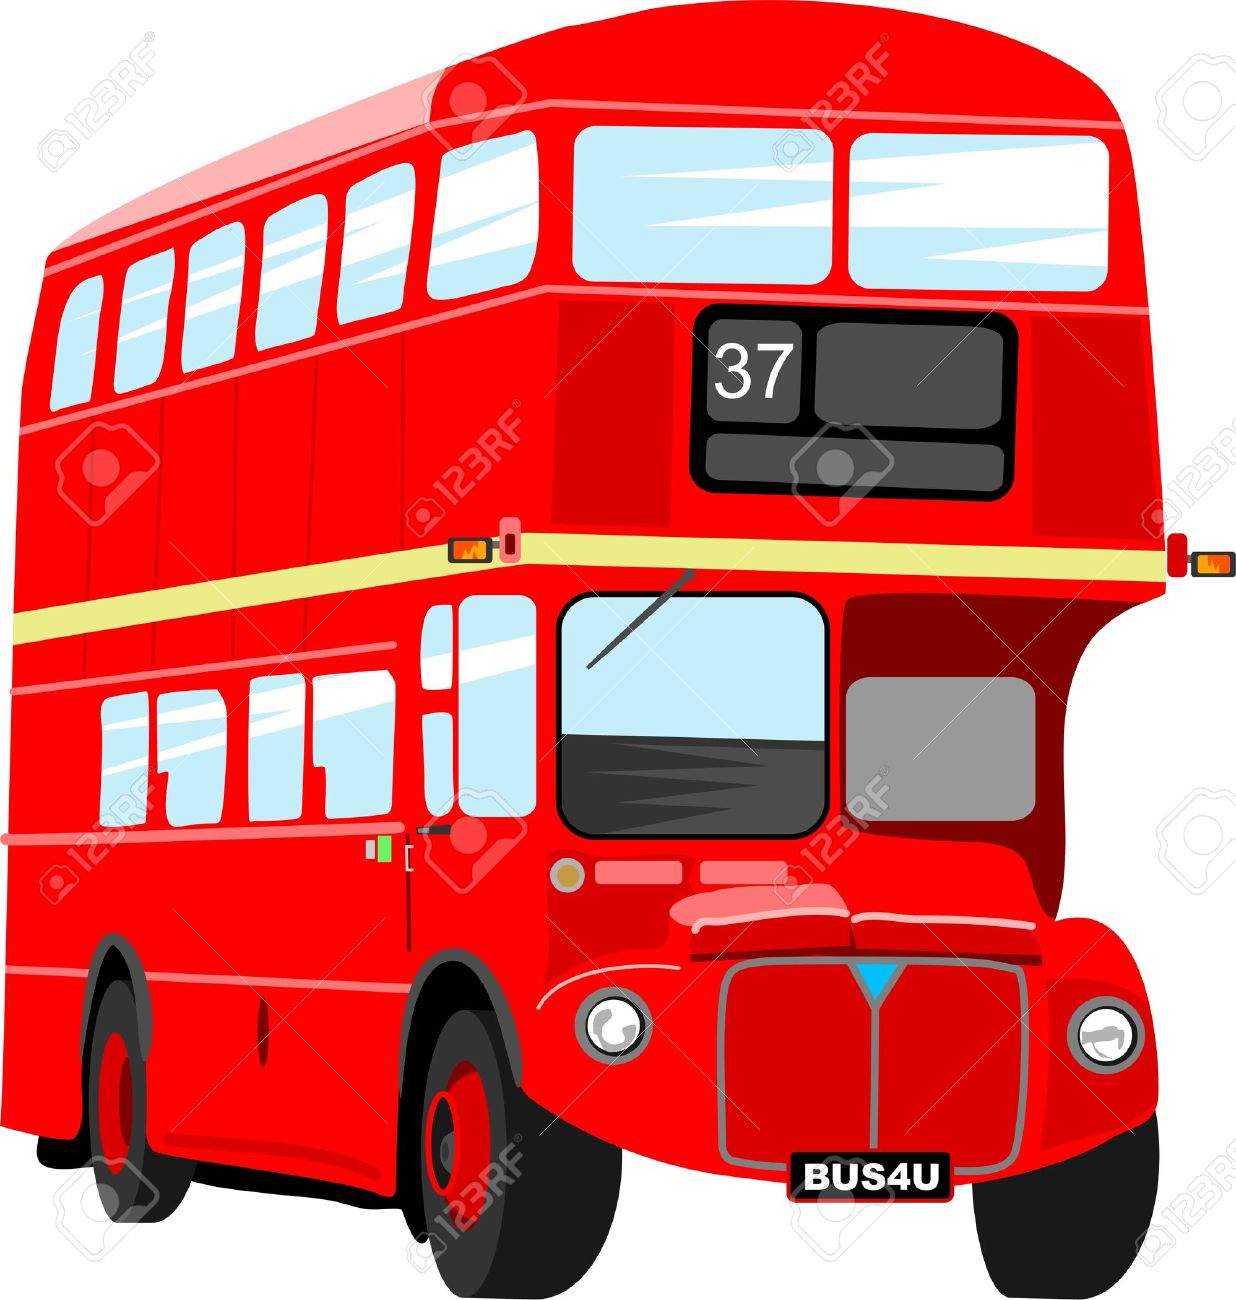 London Double Decker Bus Clipart.